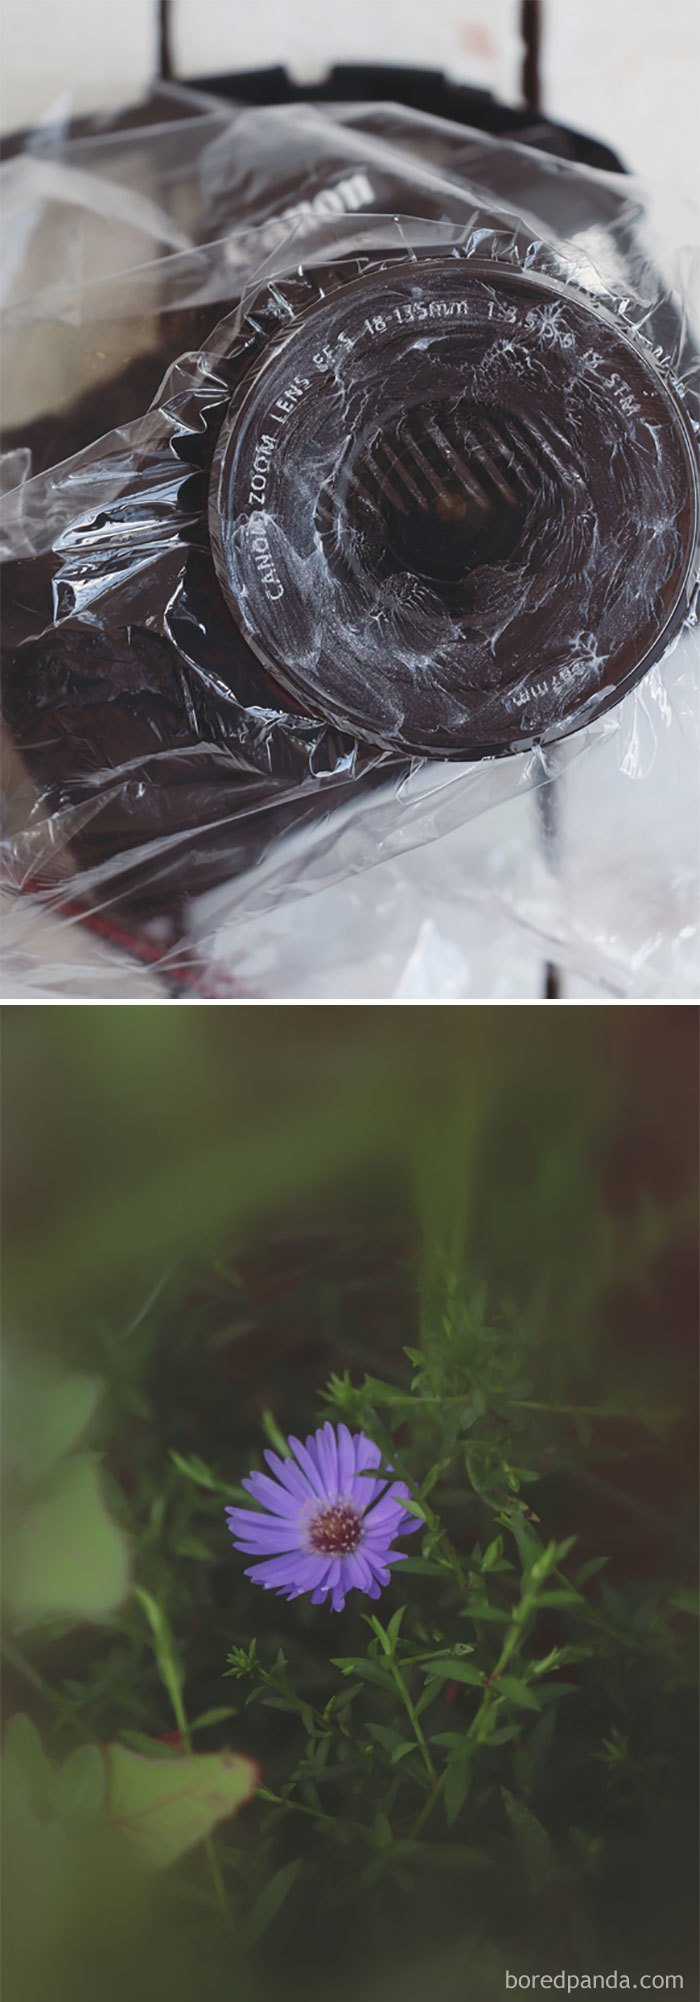 Use A Plastic Bag Smeared With Vaseline For A Soft-Focus Lens Effect